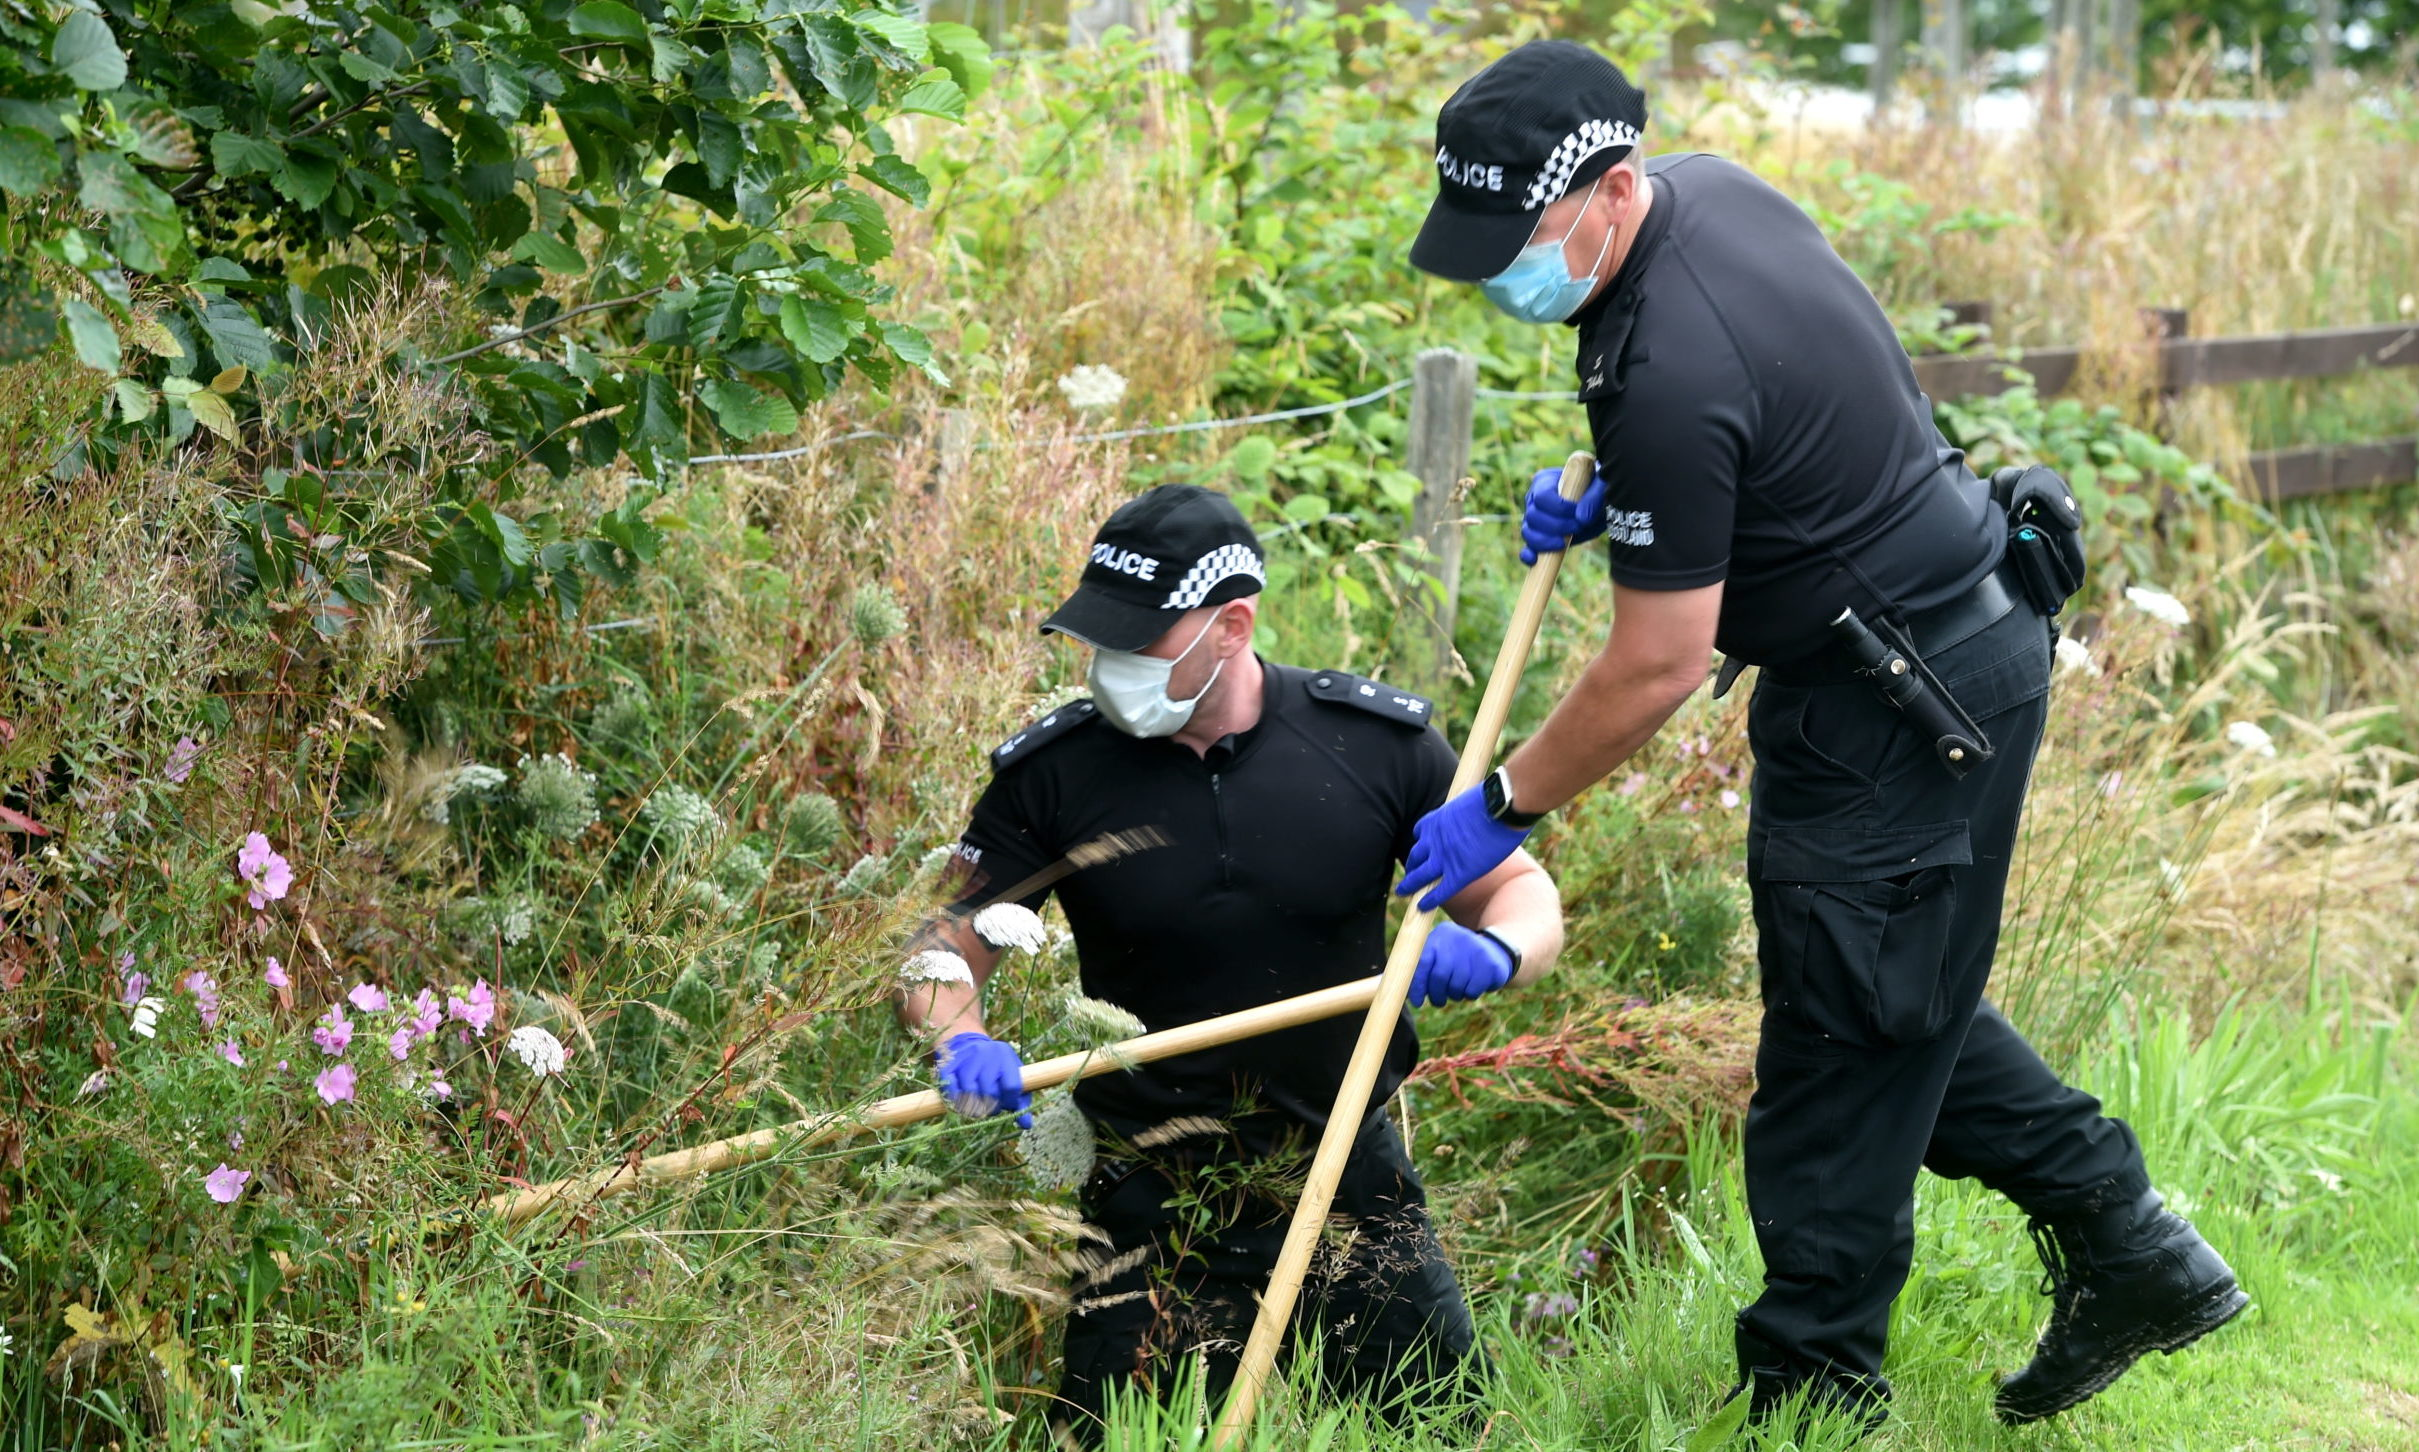 Police search the verges and undergrowth close to the scene of the incident. Picture by Sandy McCook